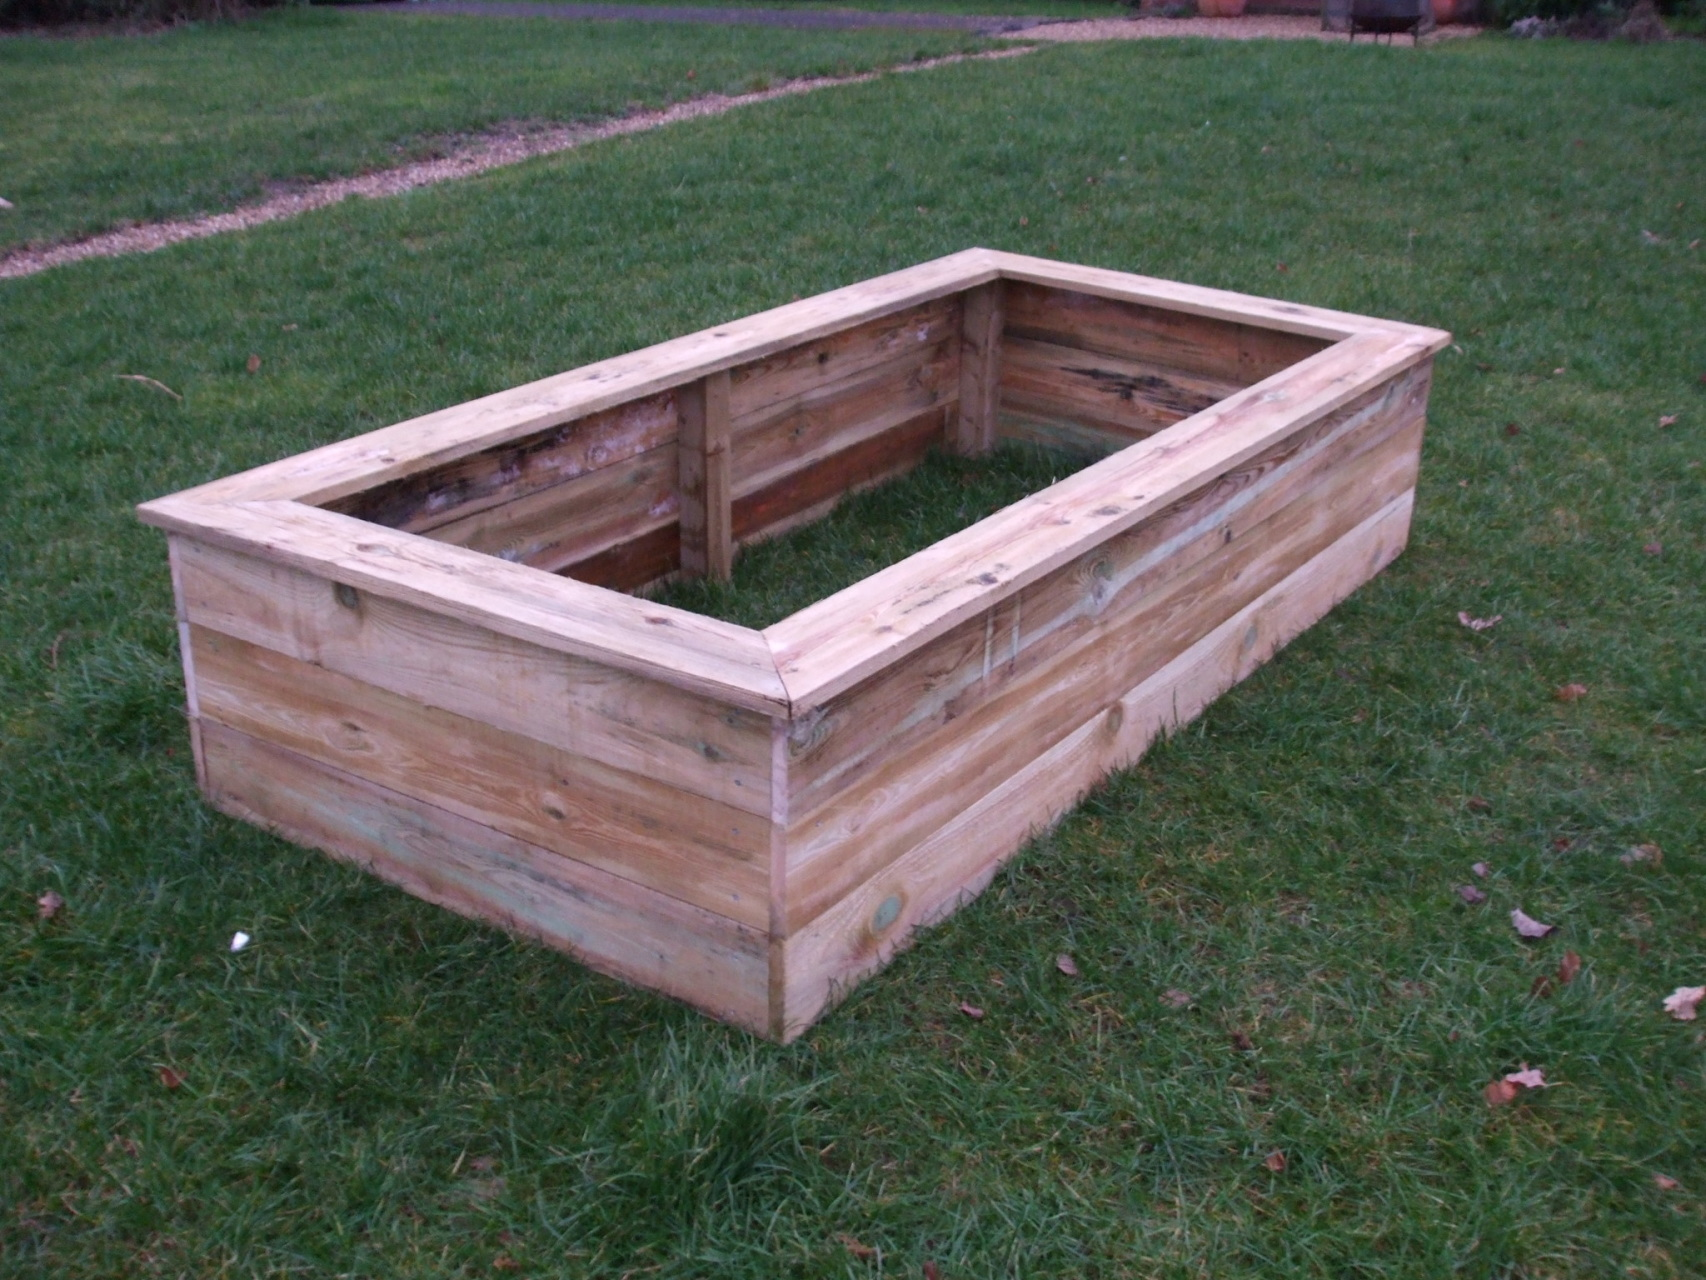 The raised bed and pond company raised beds and raised for Raised garden pond ideas uk